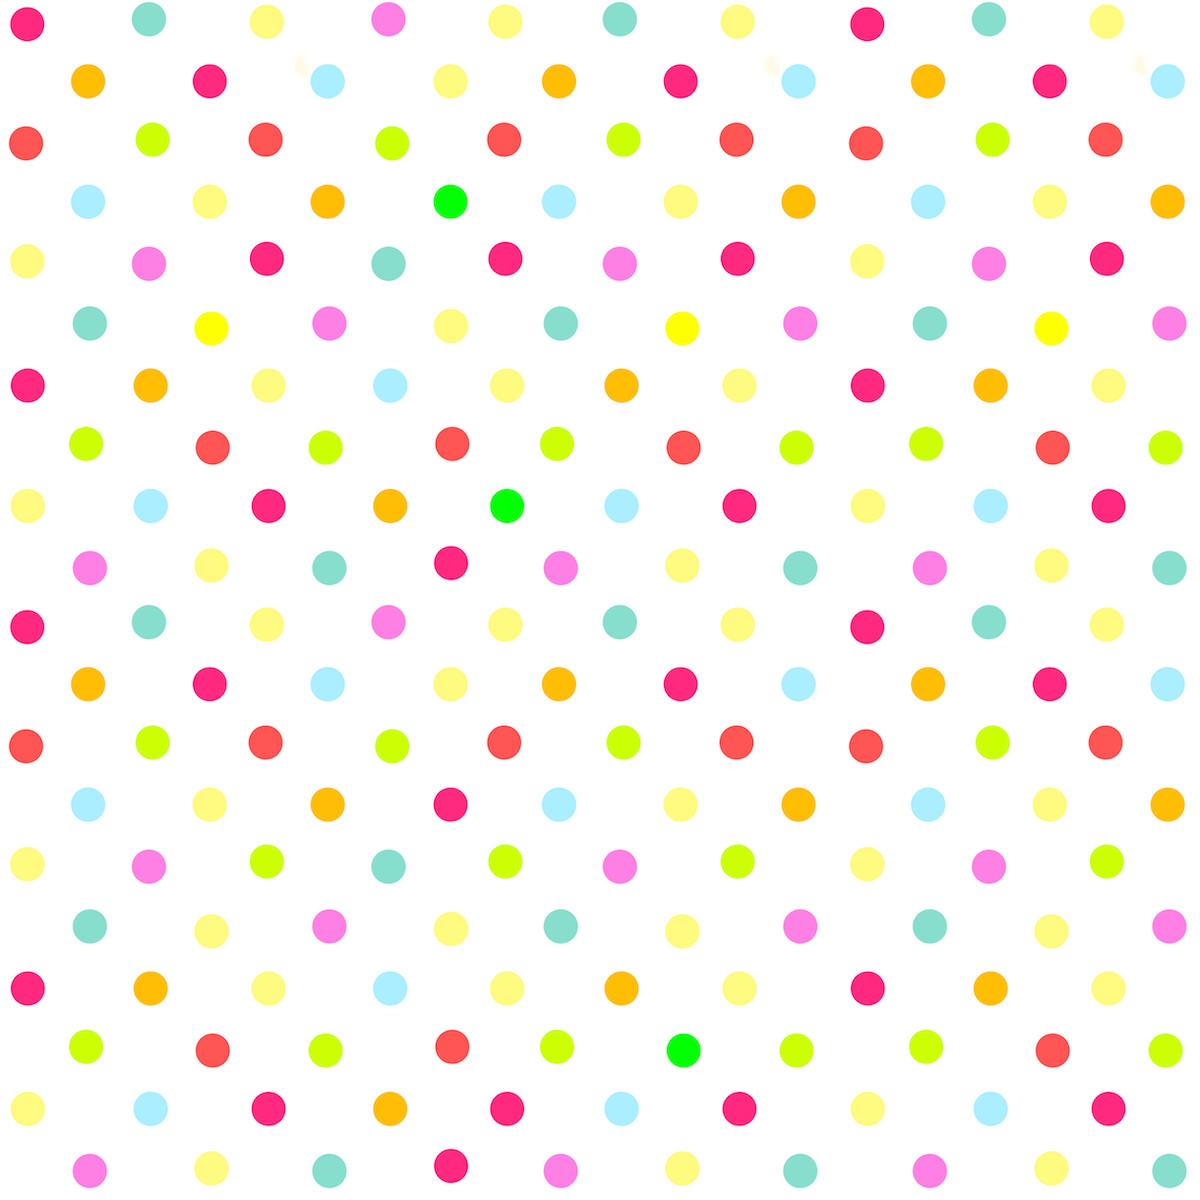 Meinlilapark Digital Multicolored Polka Dot